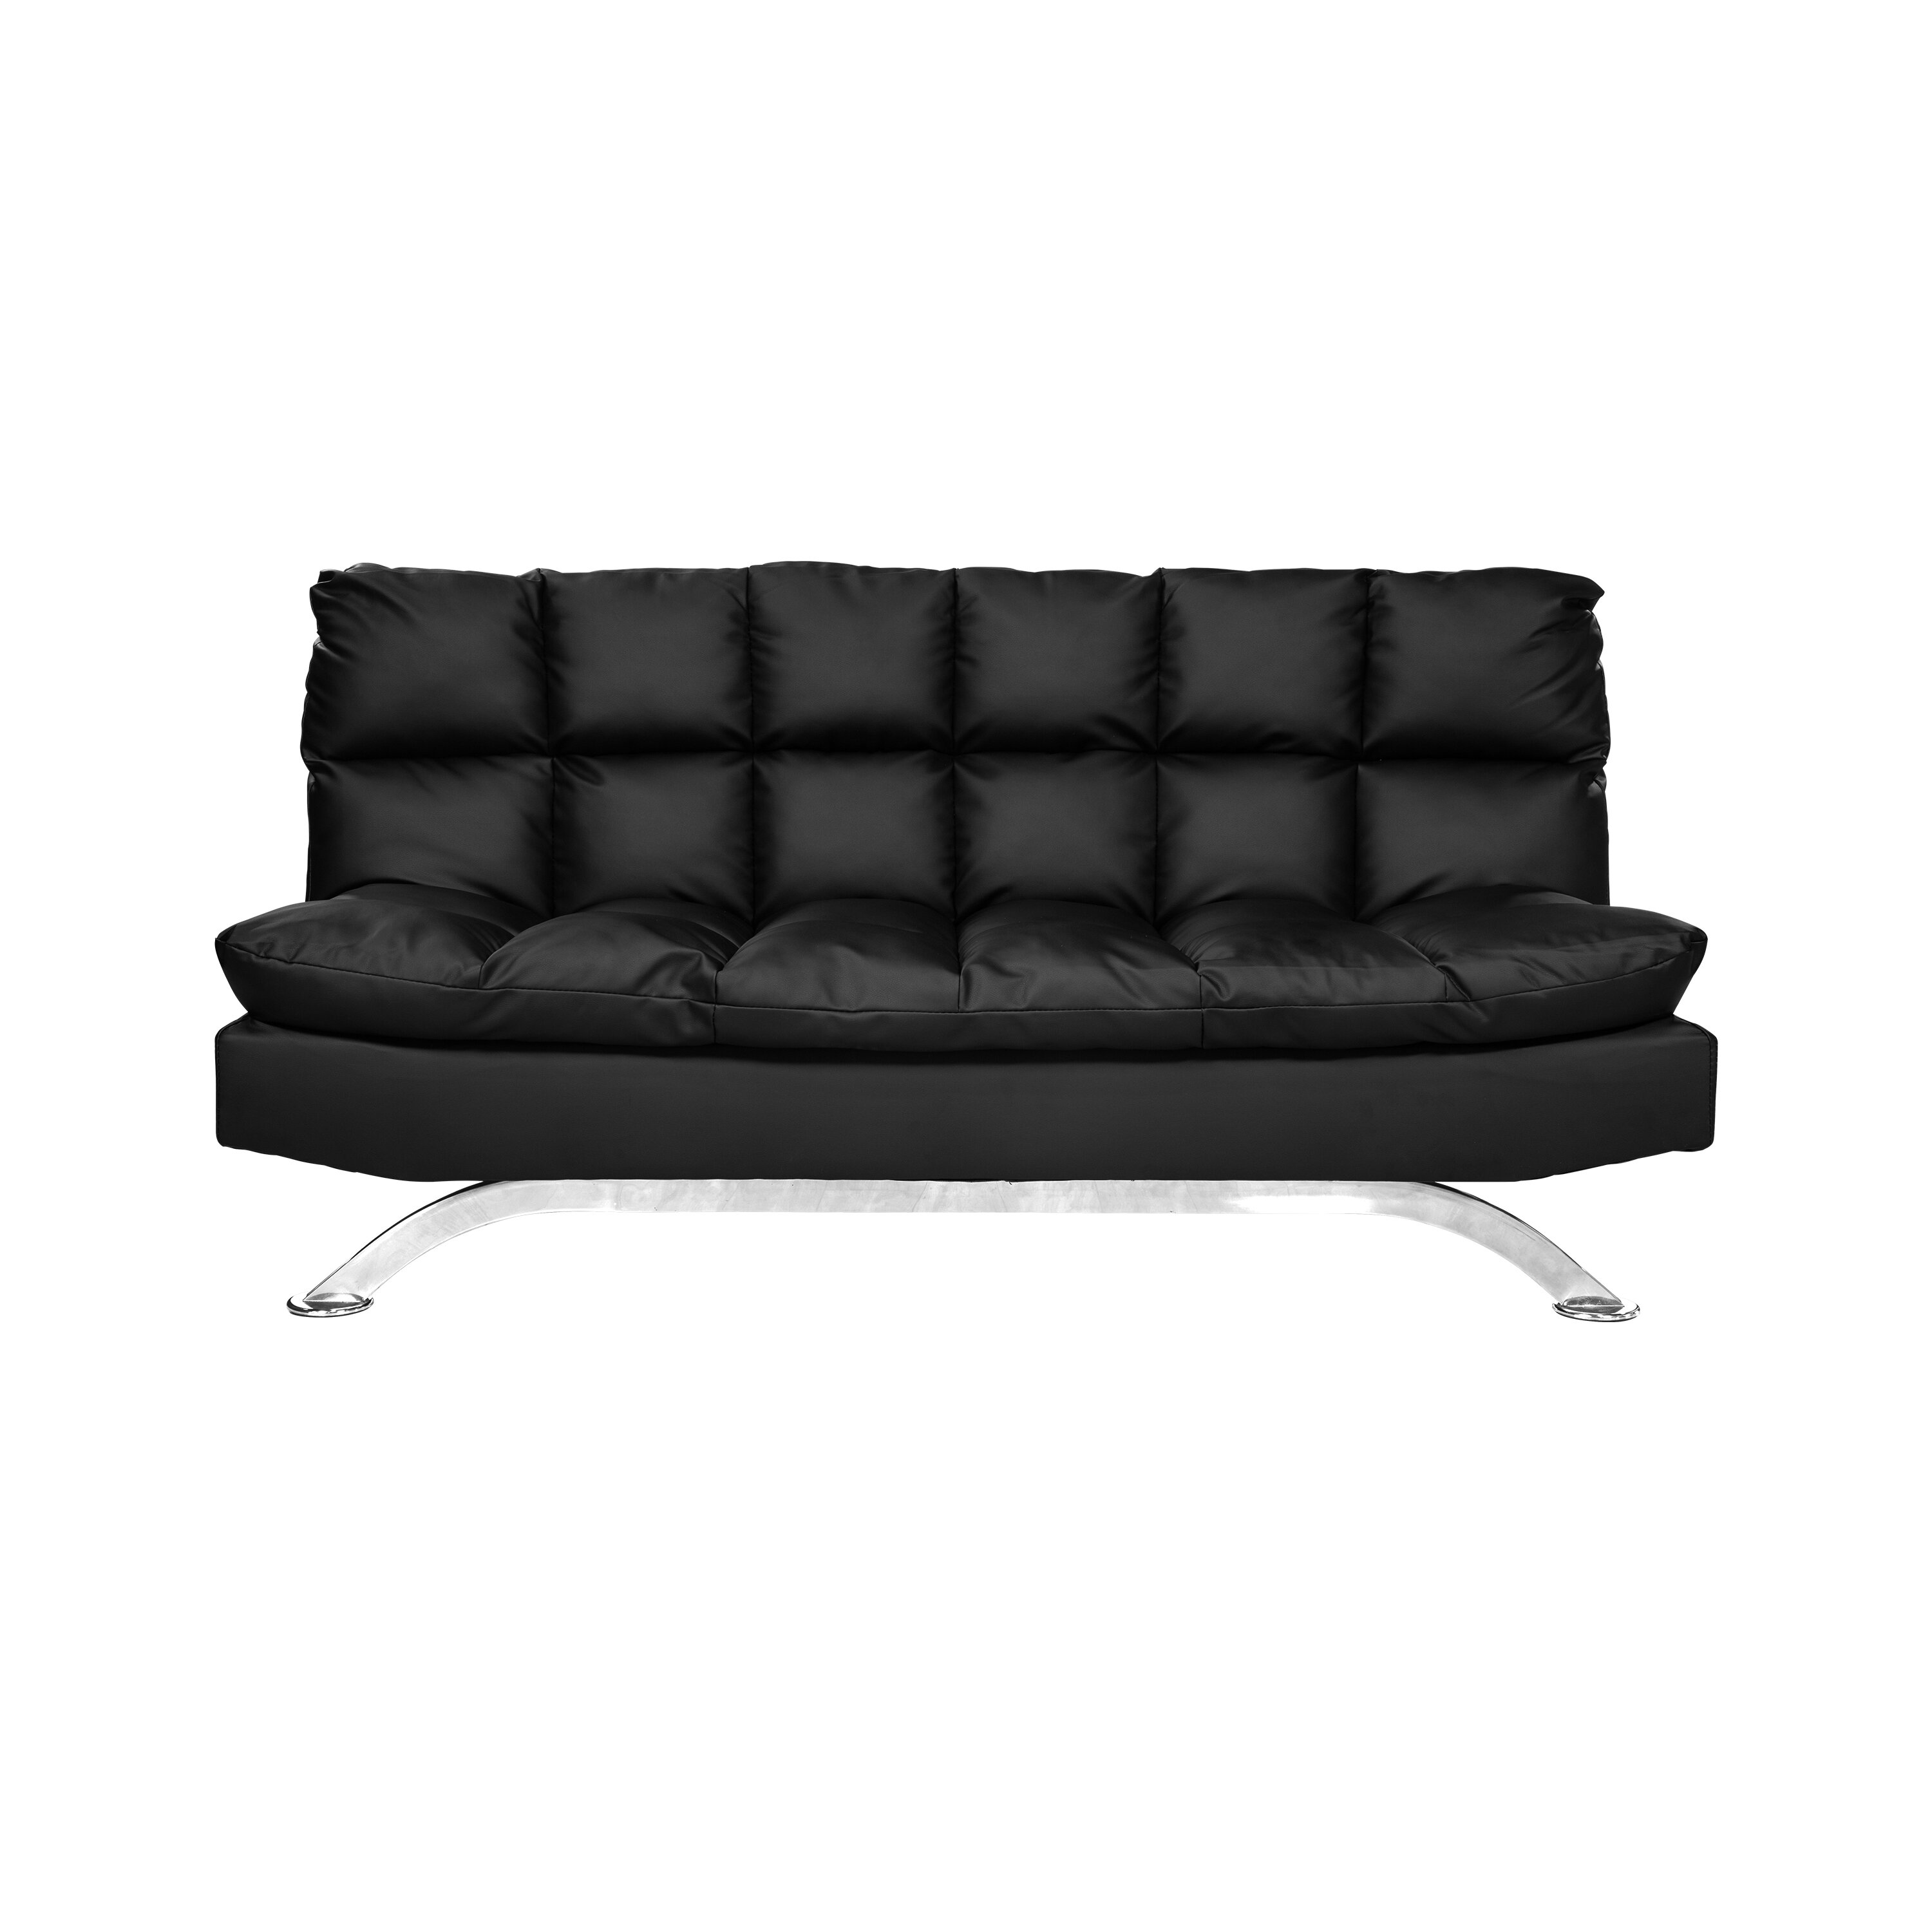 Sleeper Sofa.Rhames Sleeper Sofa